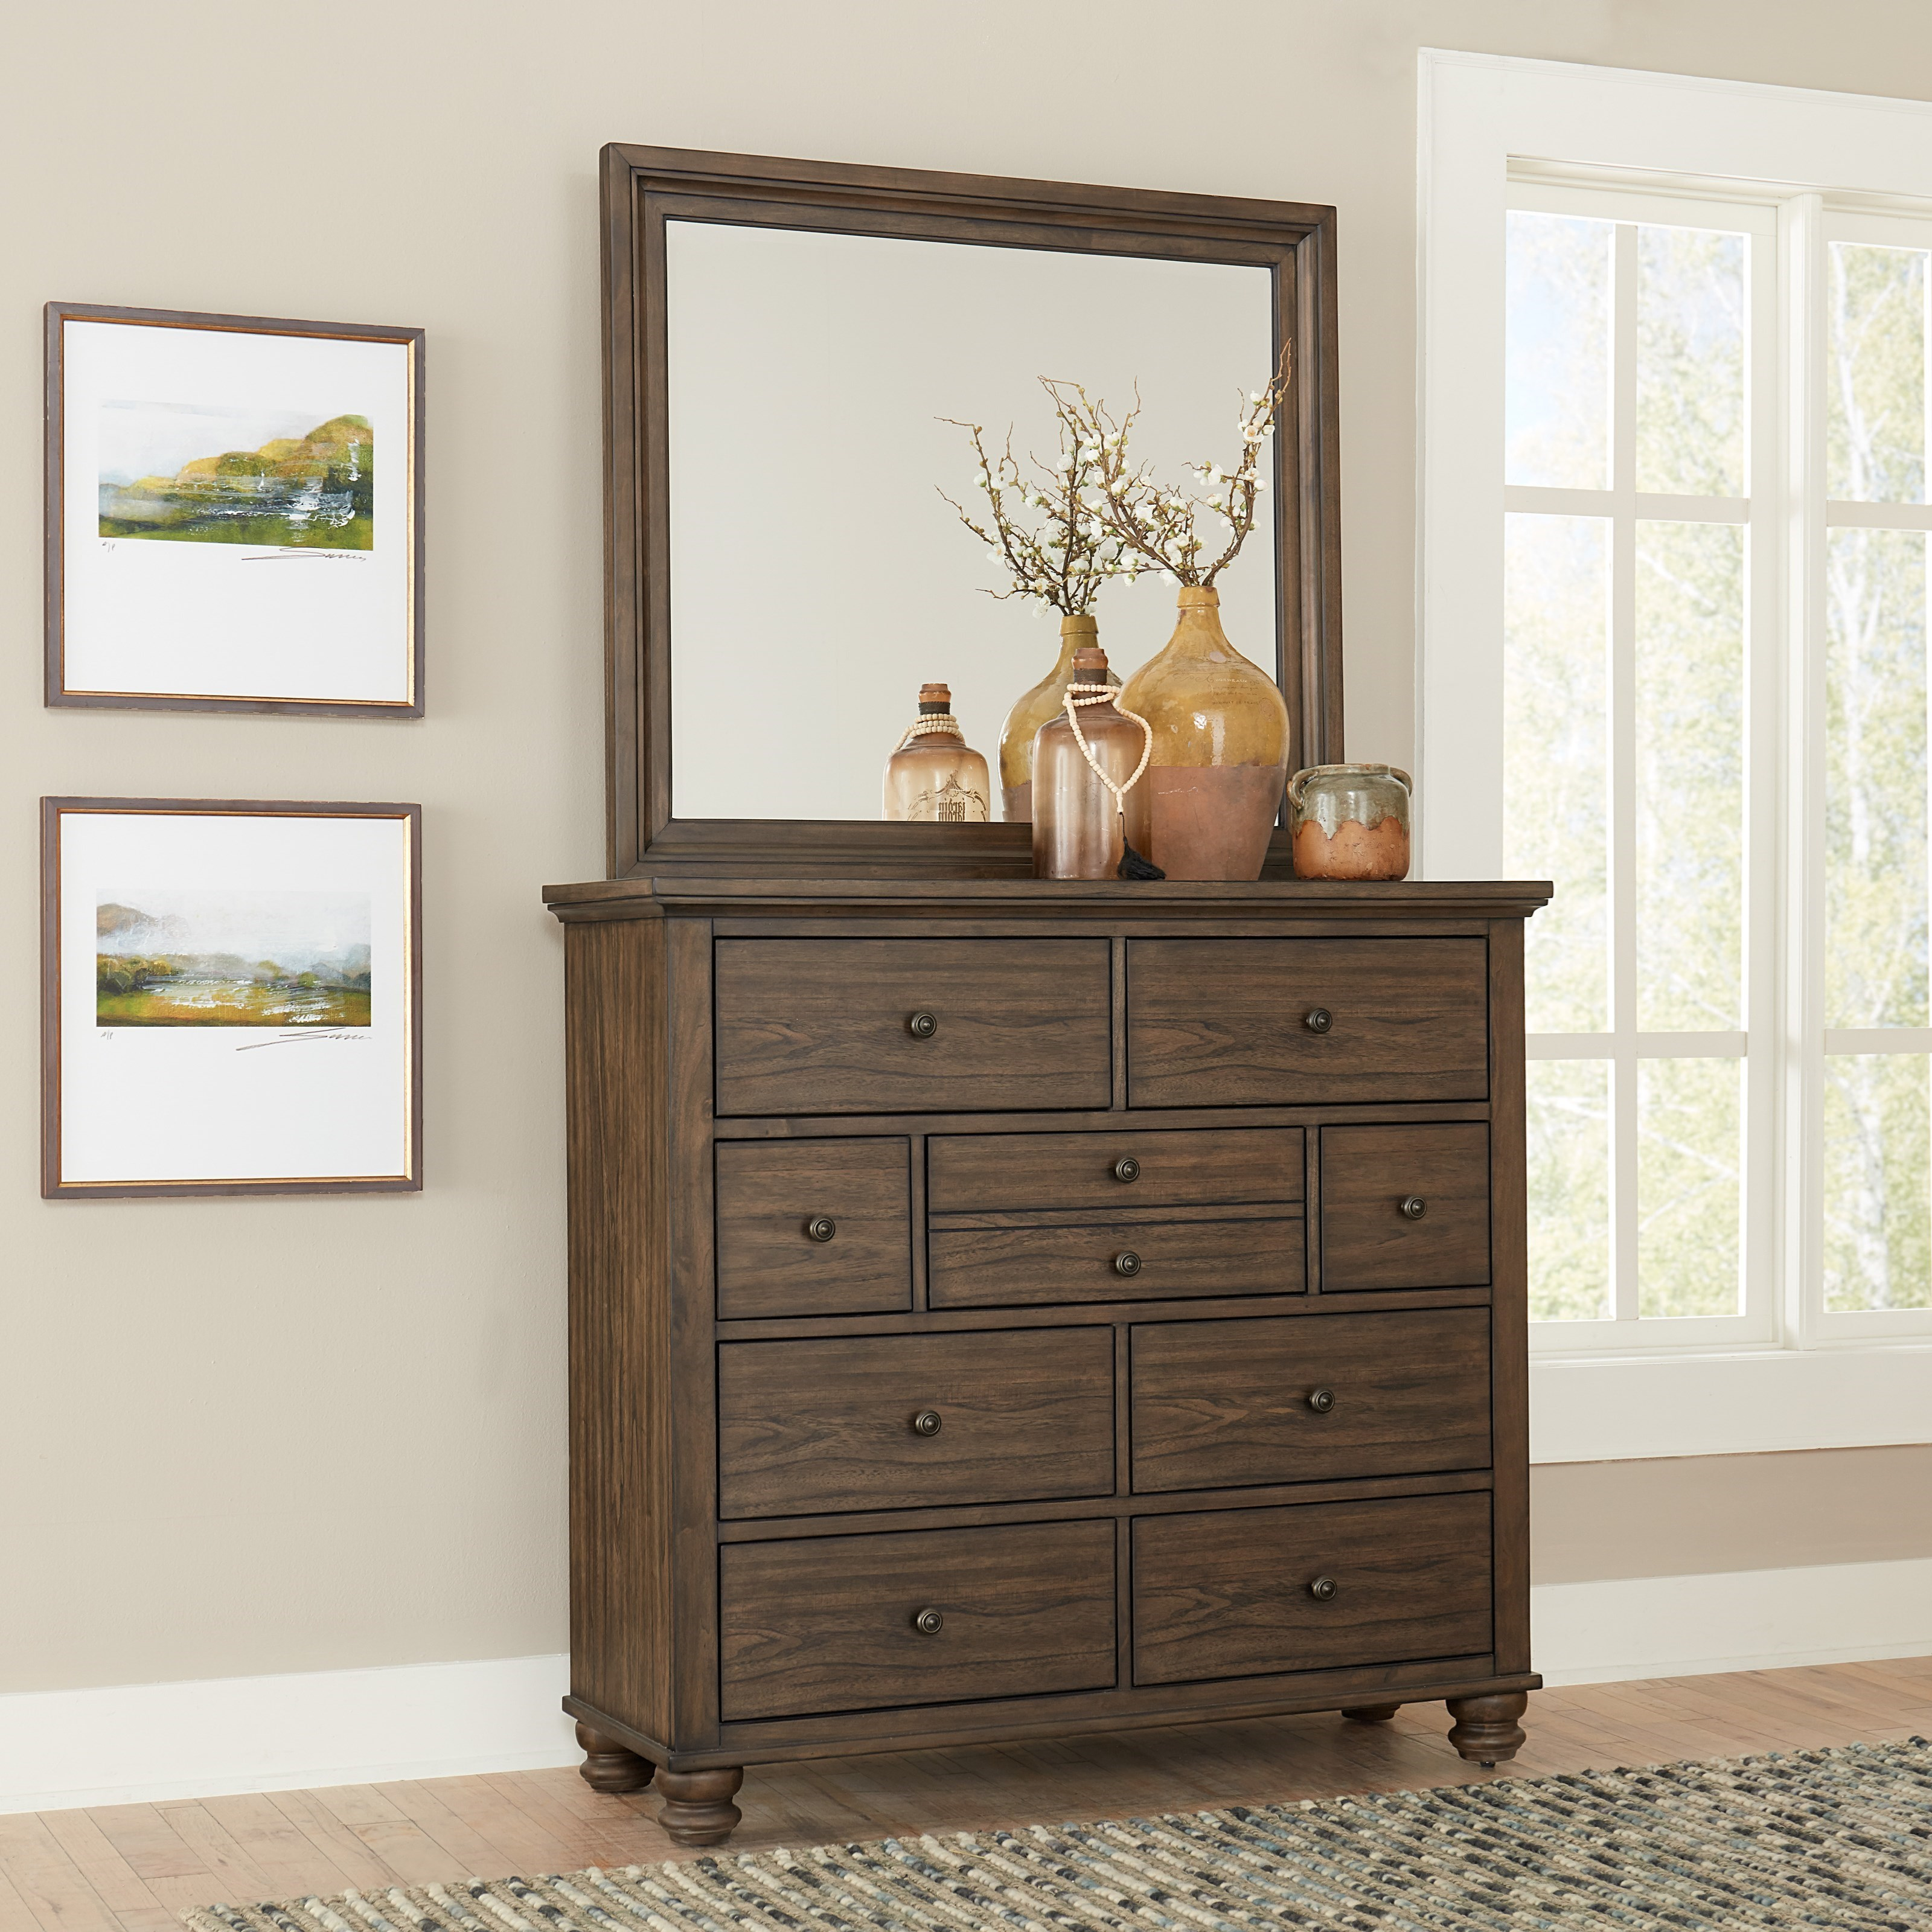 Transitional Chest and Mirror Combination with 10 Drawers